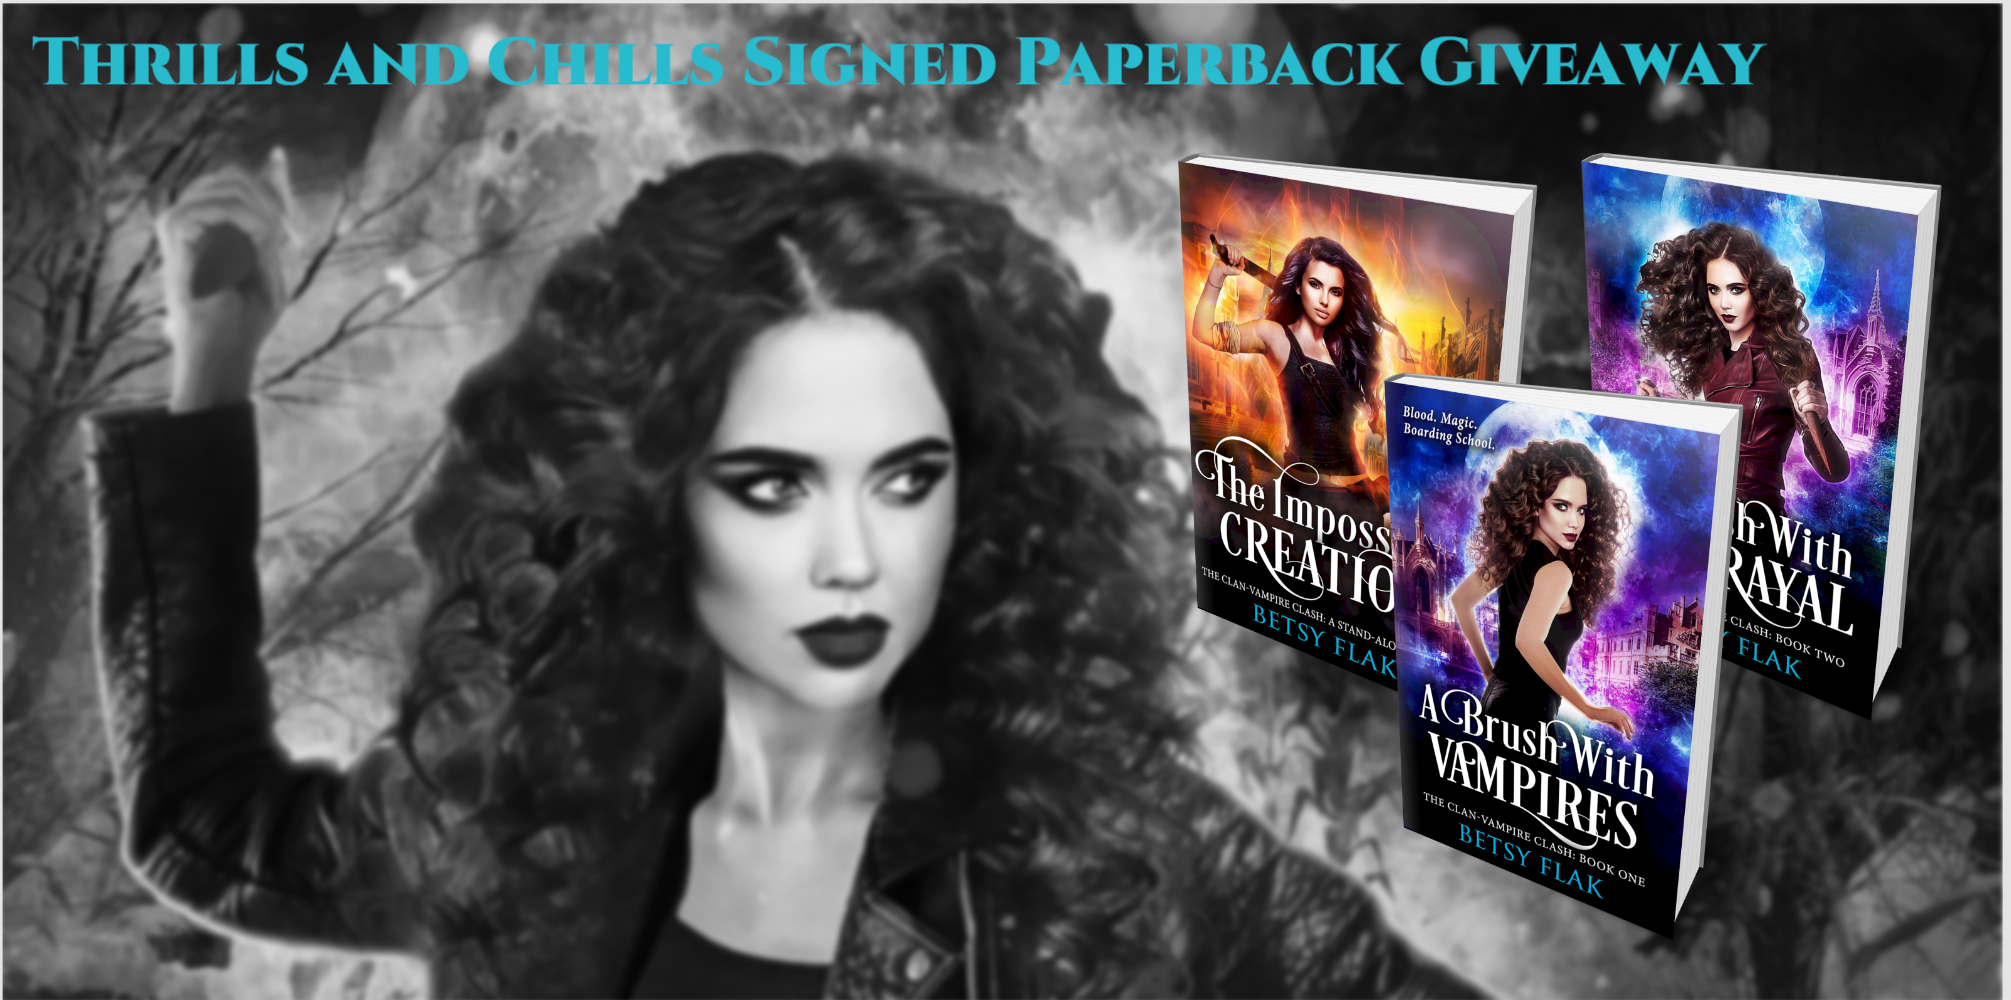 The Thrills and Chills Signed Paperback Giveaway: Win a box set of The Impossible Creation, A Brush with Vampires, and A Brush with Betrayal signed paperbacks.